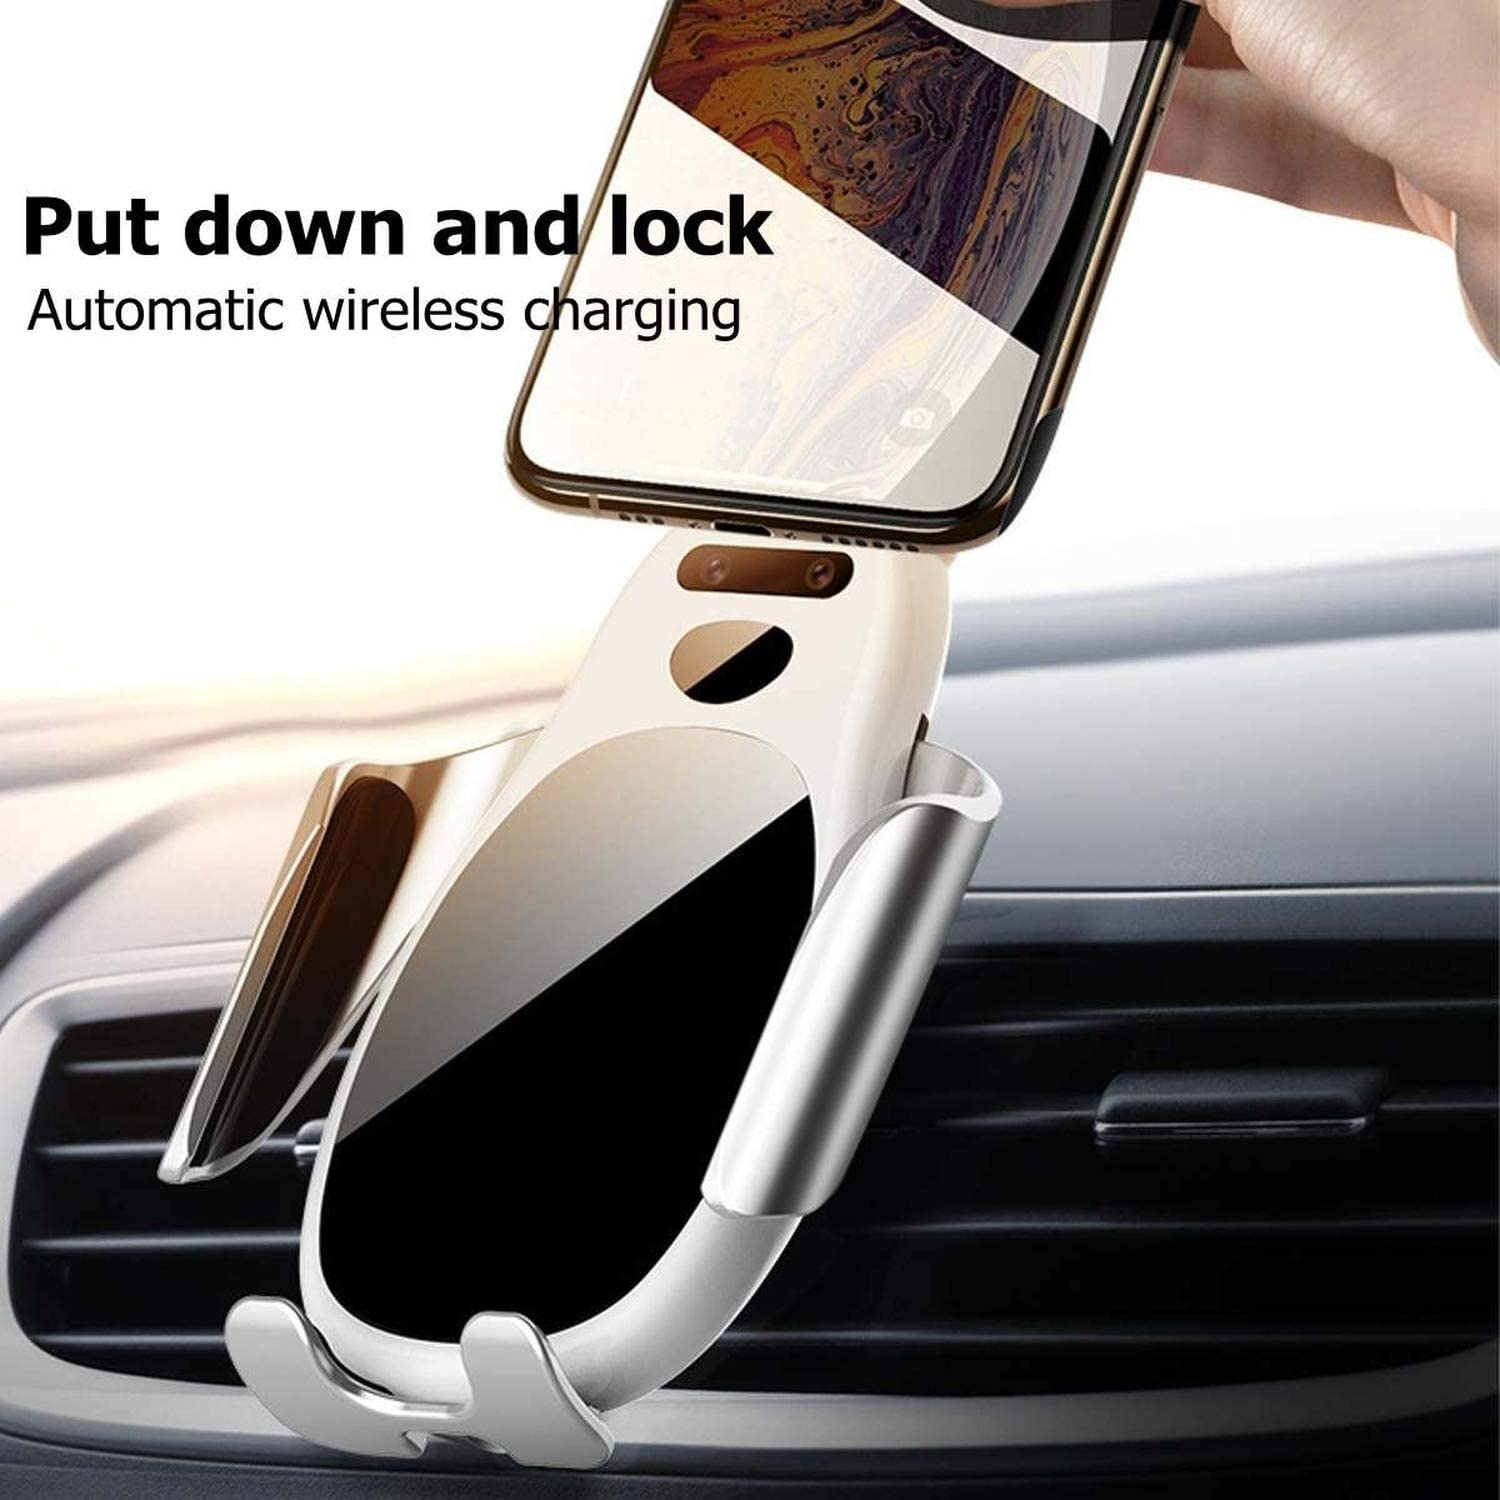 Smart Infrared Sensor Car Phone Mount,Automatic Wireless Car Charger,QI 10W Fast Charging Phone Holder Compatible for Samsung Xiaomi Huawei iPhone and More